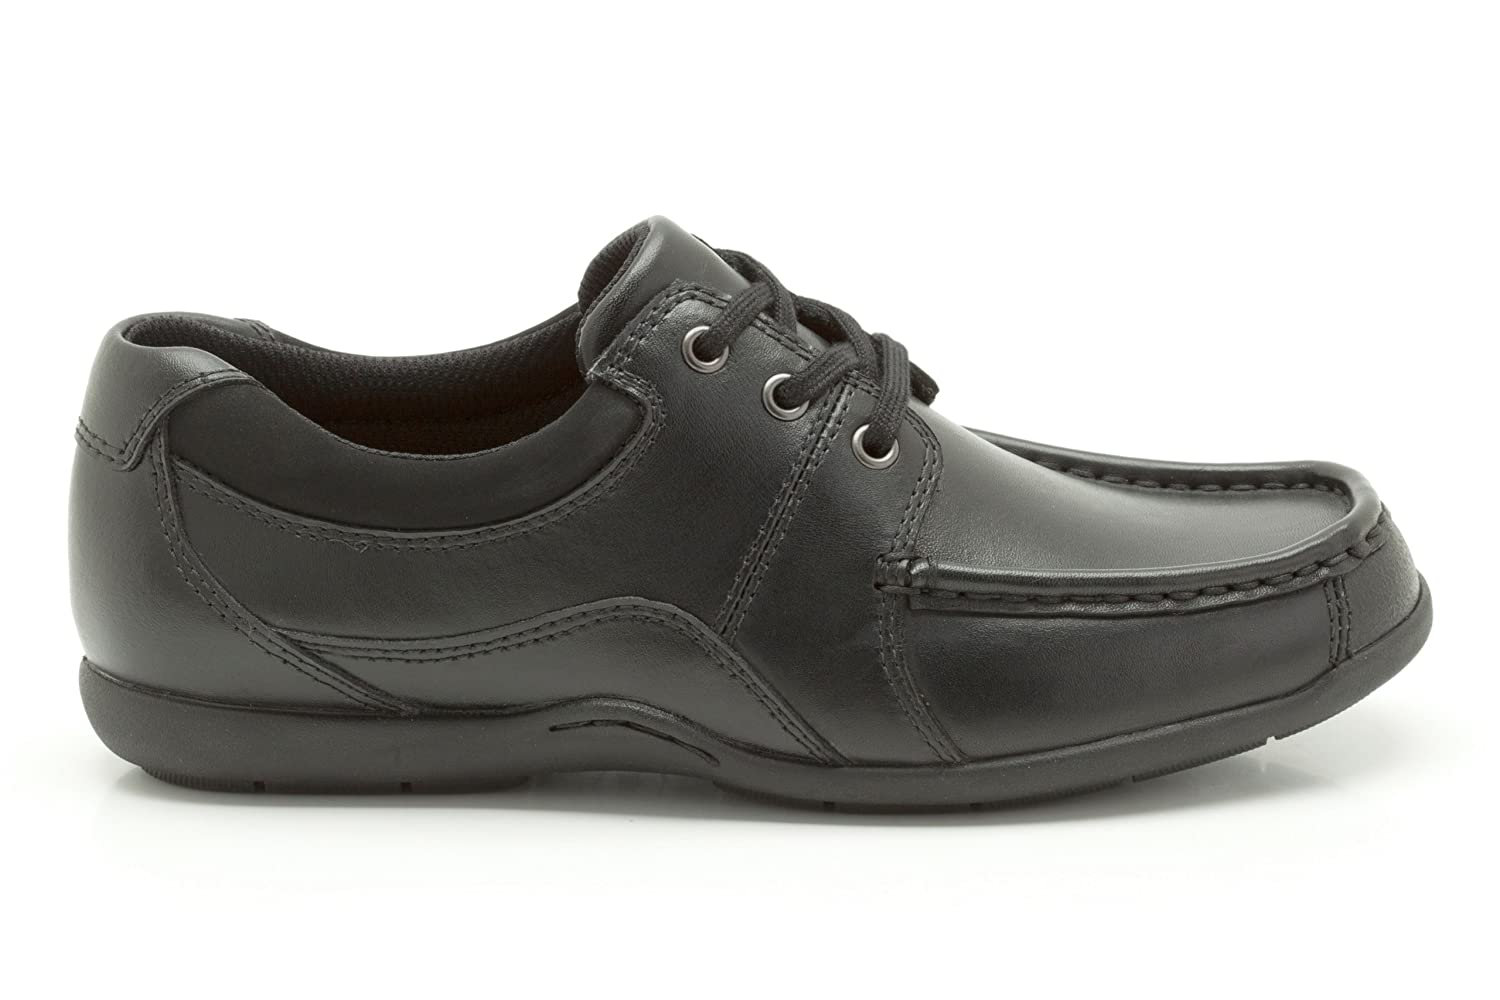 376af3522 Senior Boys Bootleg by Clarks School Shoes Penwith  Amazon.co.uk  Shoes    Bags